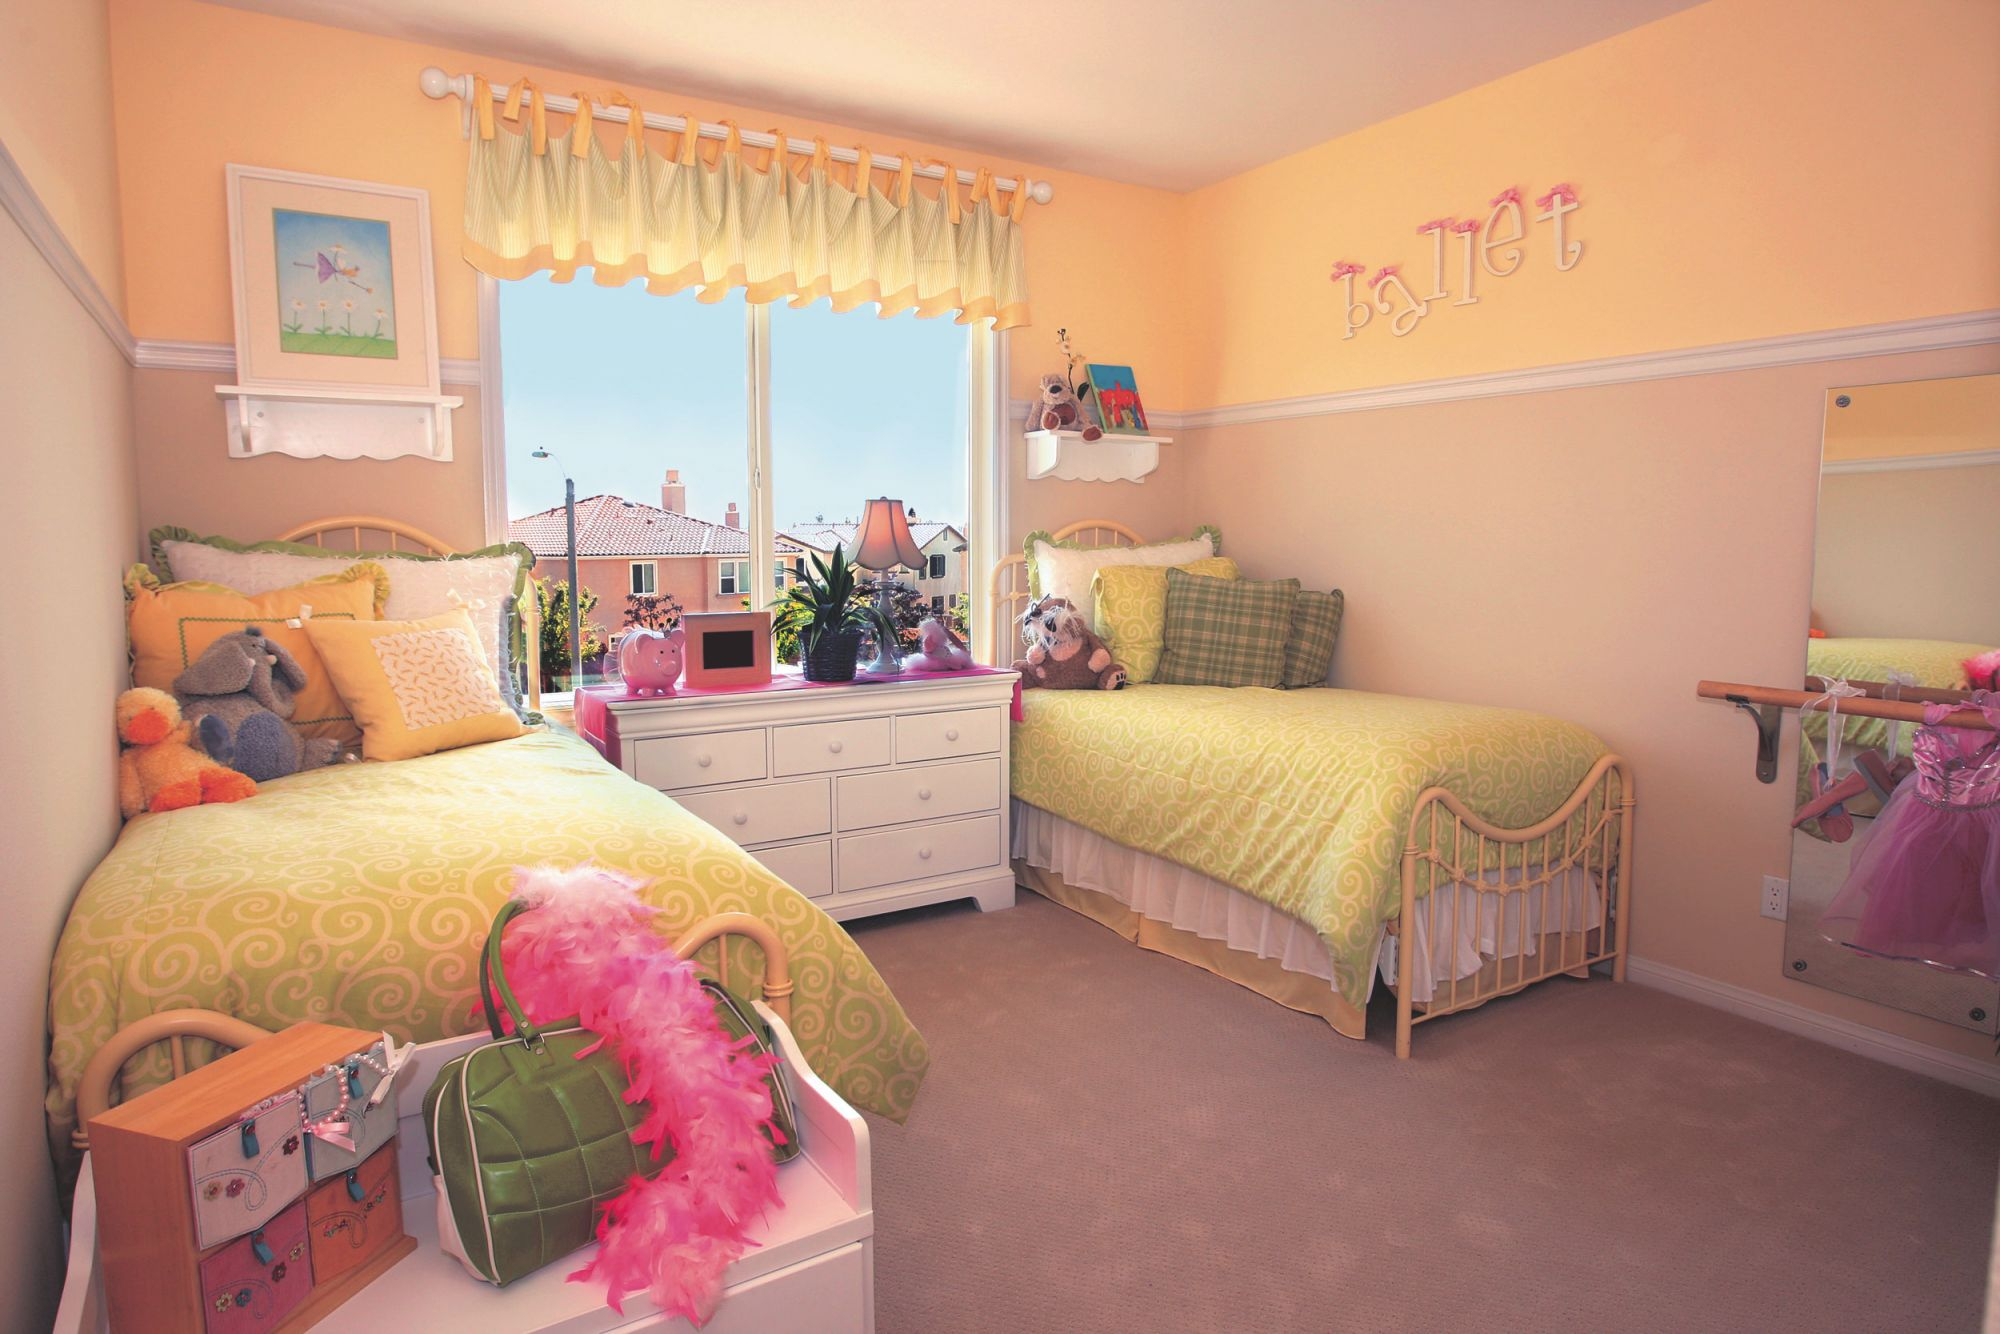 Small Bedroom Ideas With Twin Beds – Visi Build 3D | First with regard to Awesome Twin Bedroom Decorating Ideas